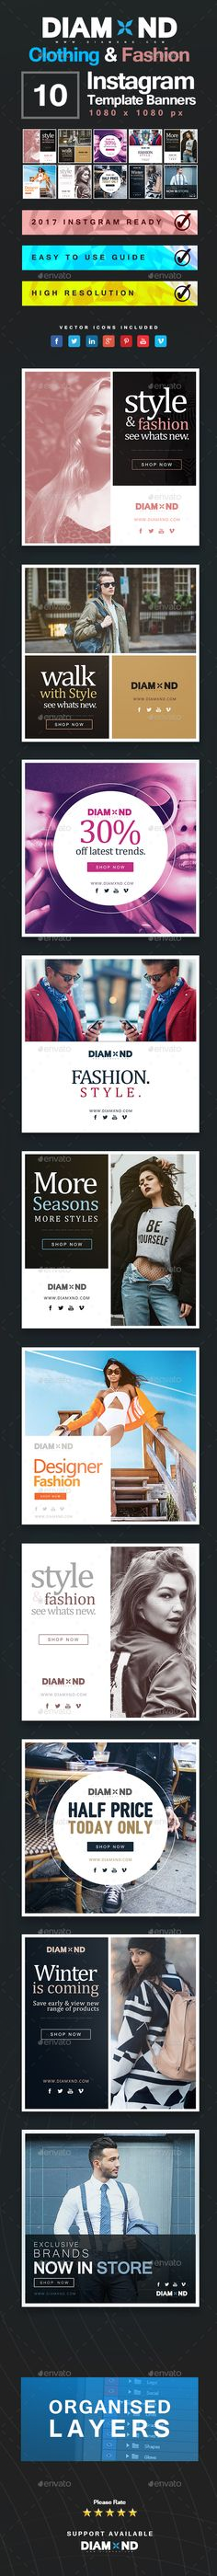 Clothing & Fashion Instagram Templates - Banners & Ads Web Elements